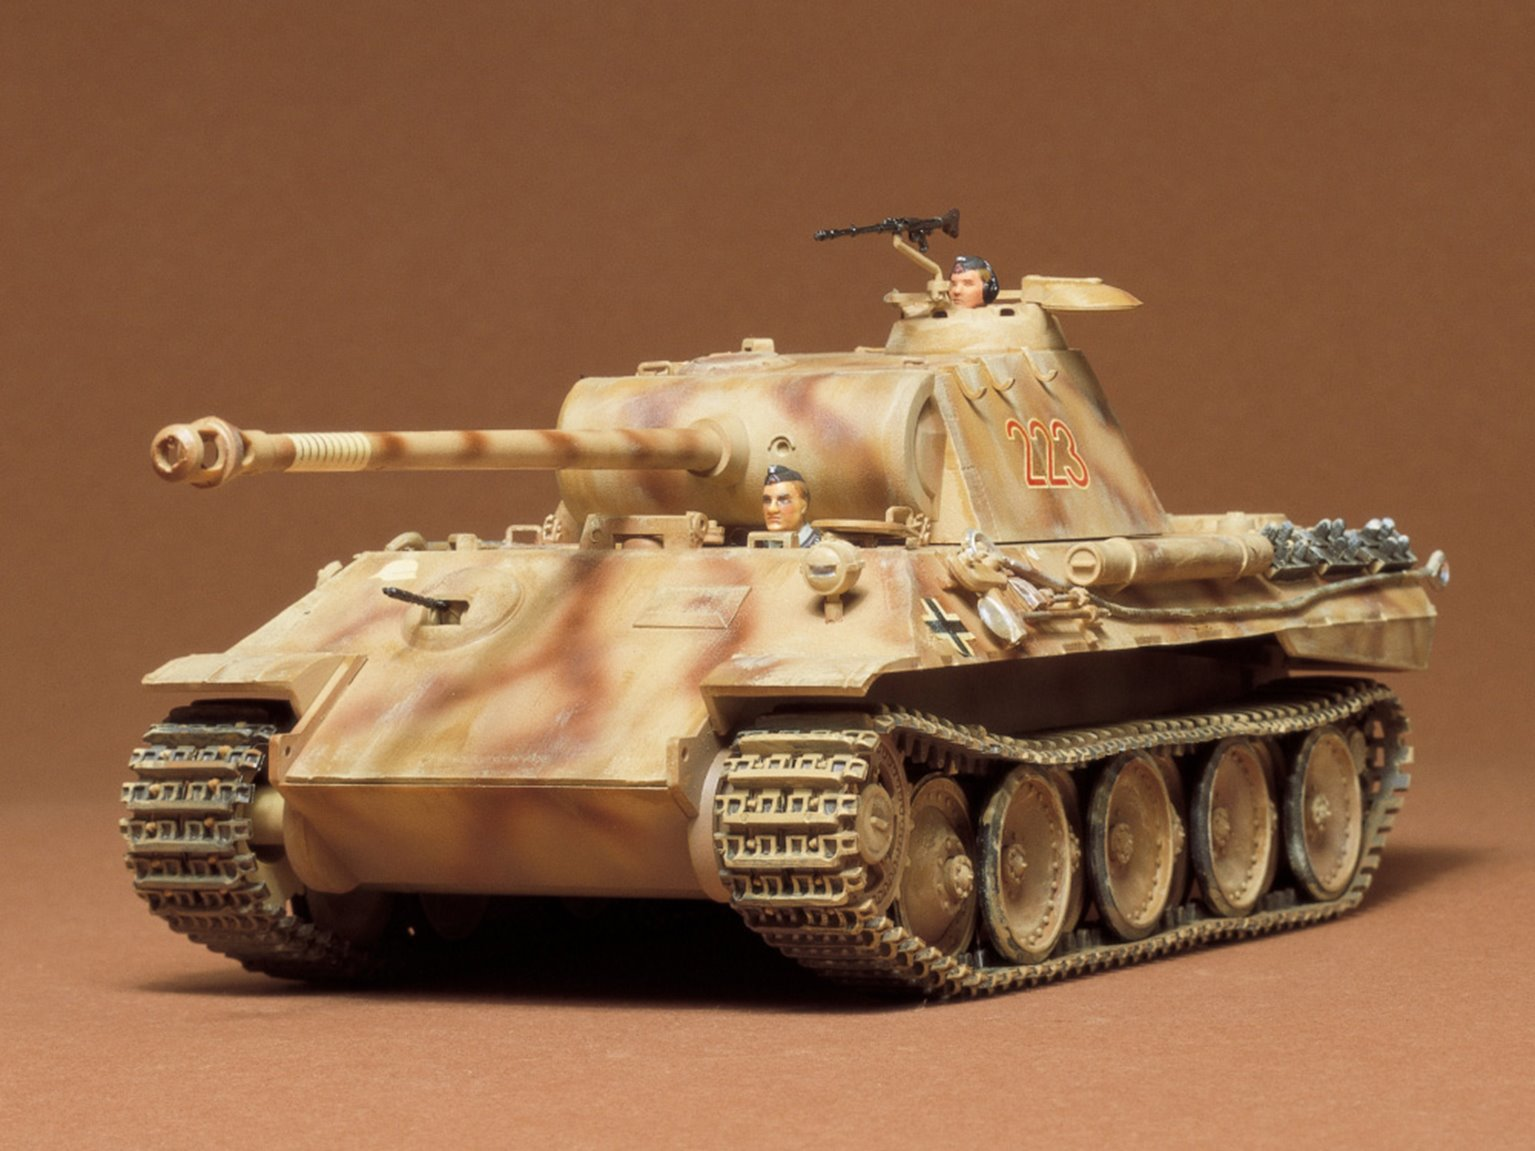 1:35 Military Miniature Series German Panther Medium Tank